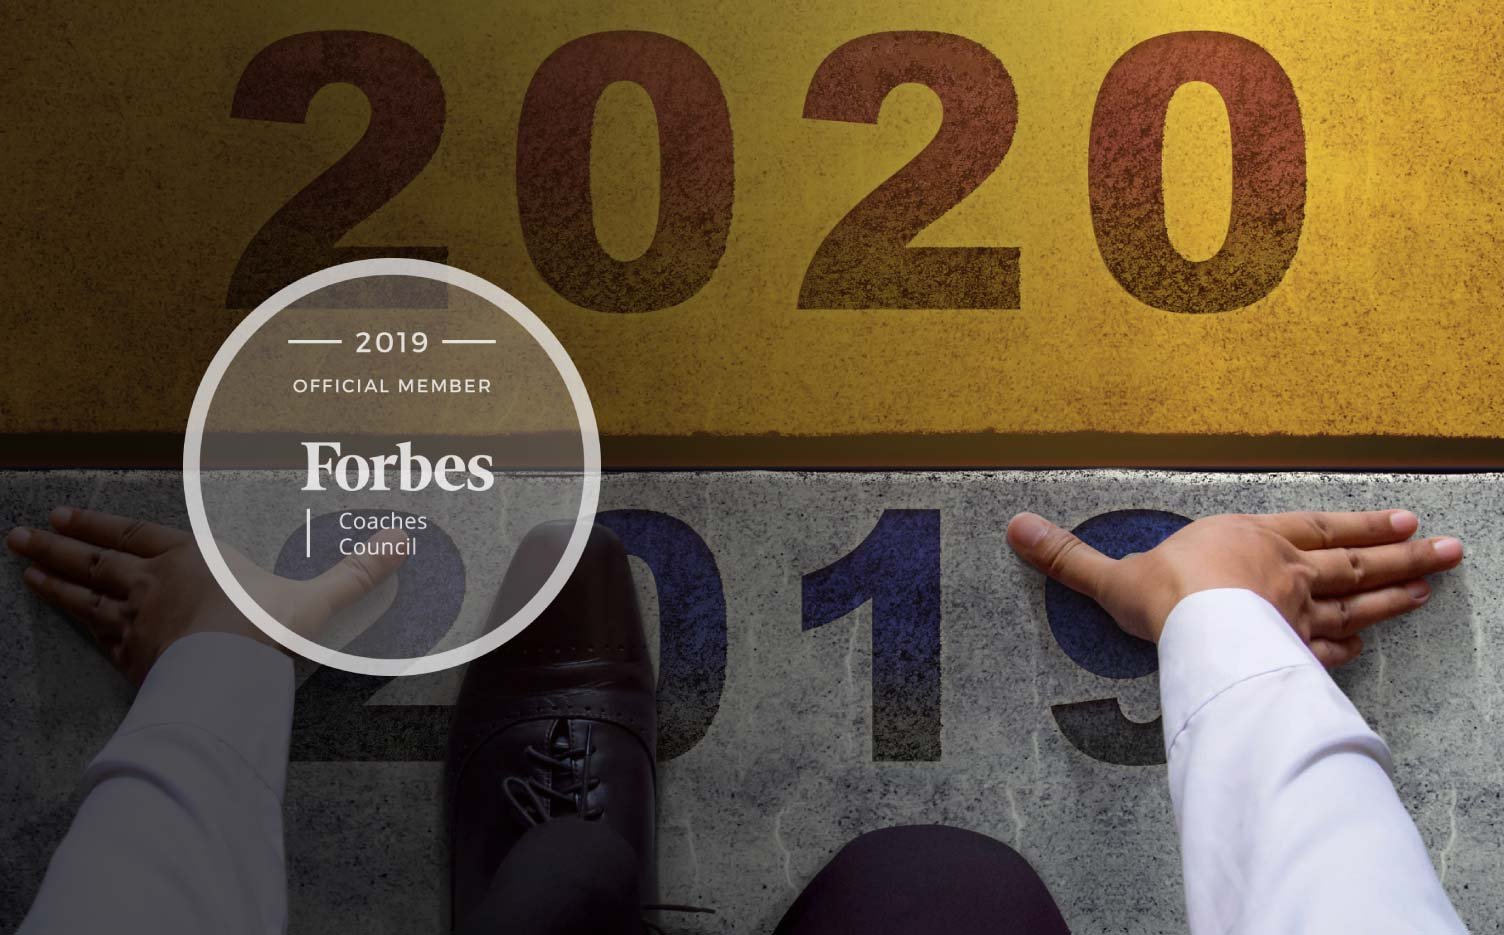 Jon Dwoskin Forbes Coaches Council Article: 10 Things To Do Now To Start Your Business Off Strong In 2020